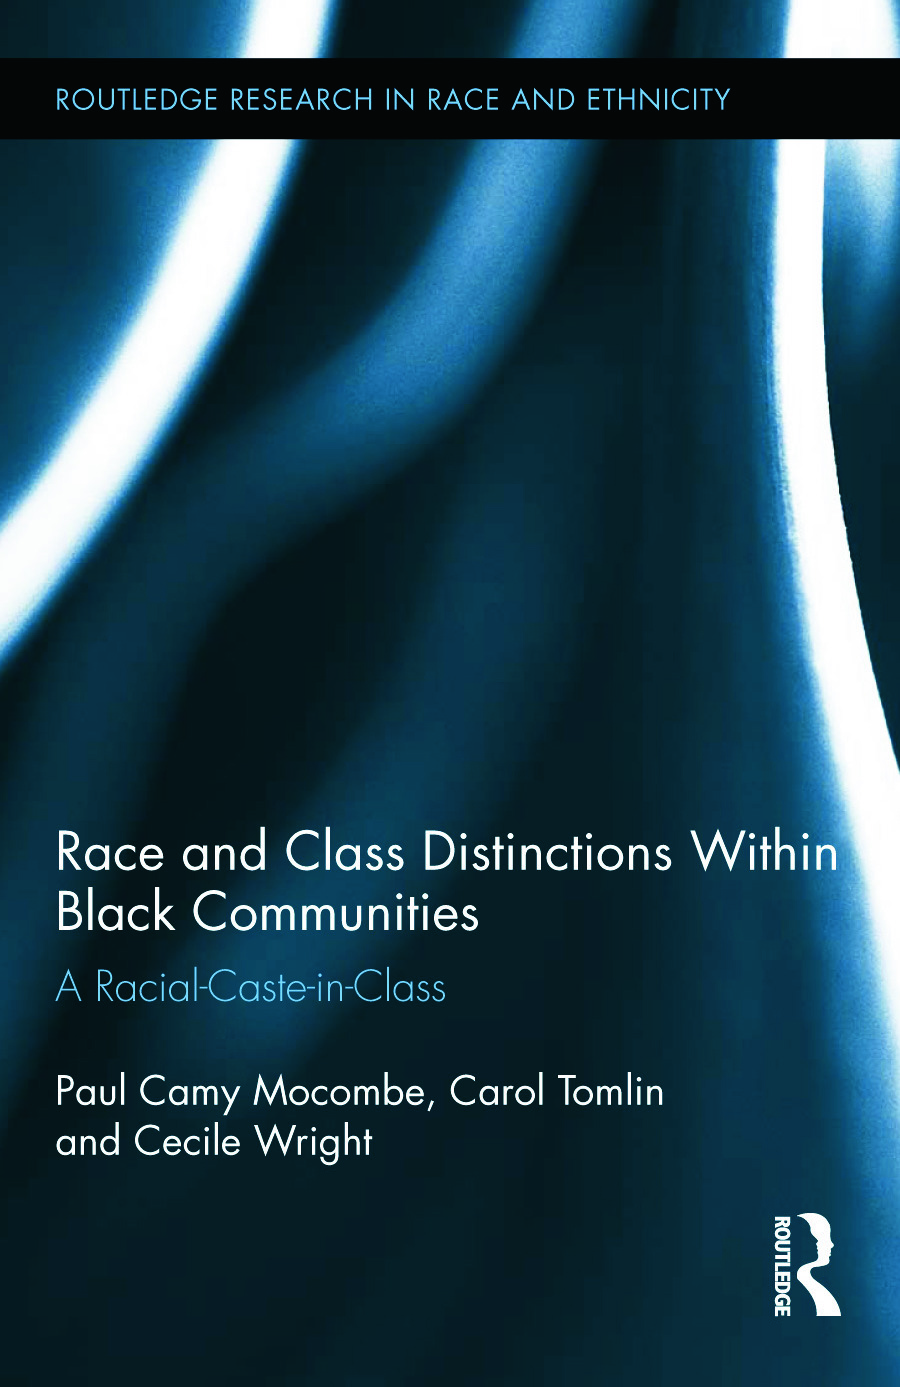 Race and Class Distinctions Within Black Communities: A Racial-Caste-in-Class book cover